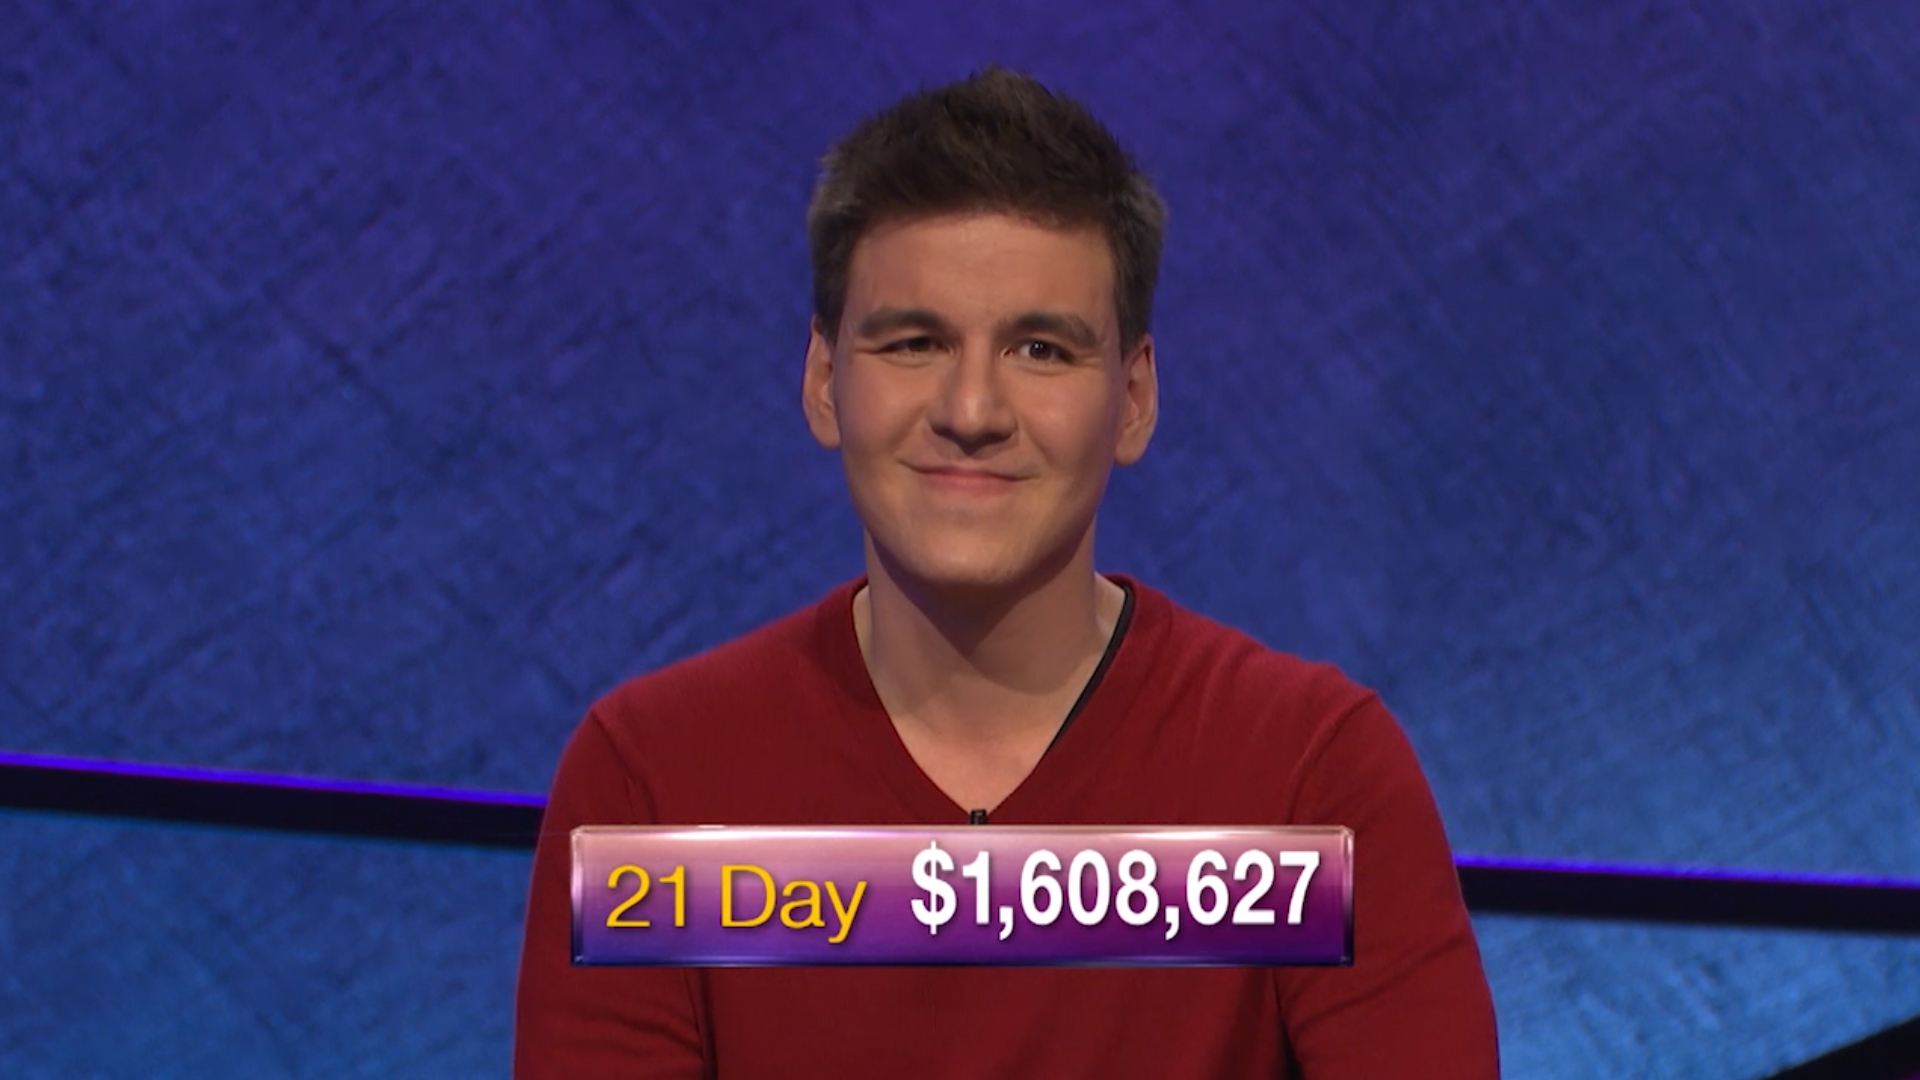 Jeopardy! contestant James Holzhauer: Live updates - CNN